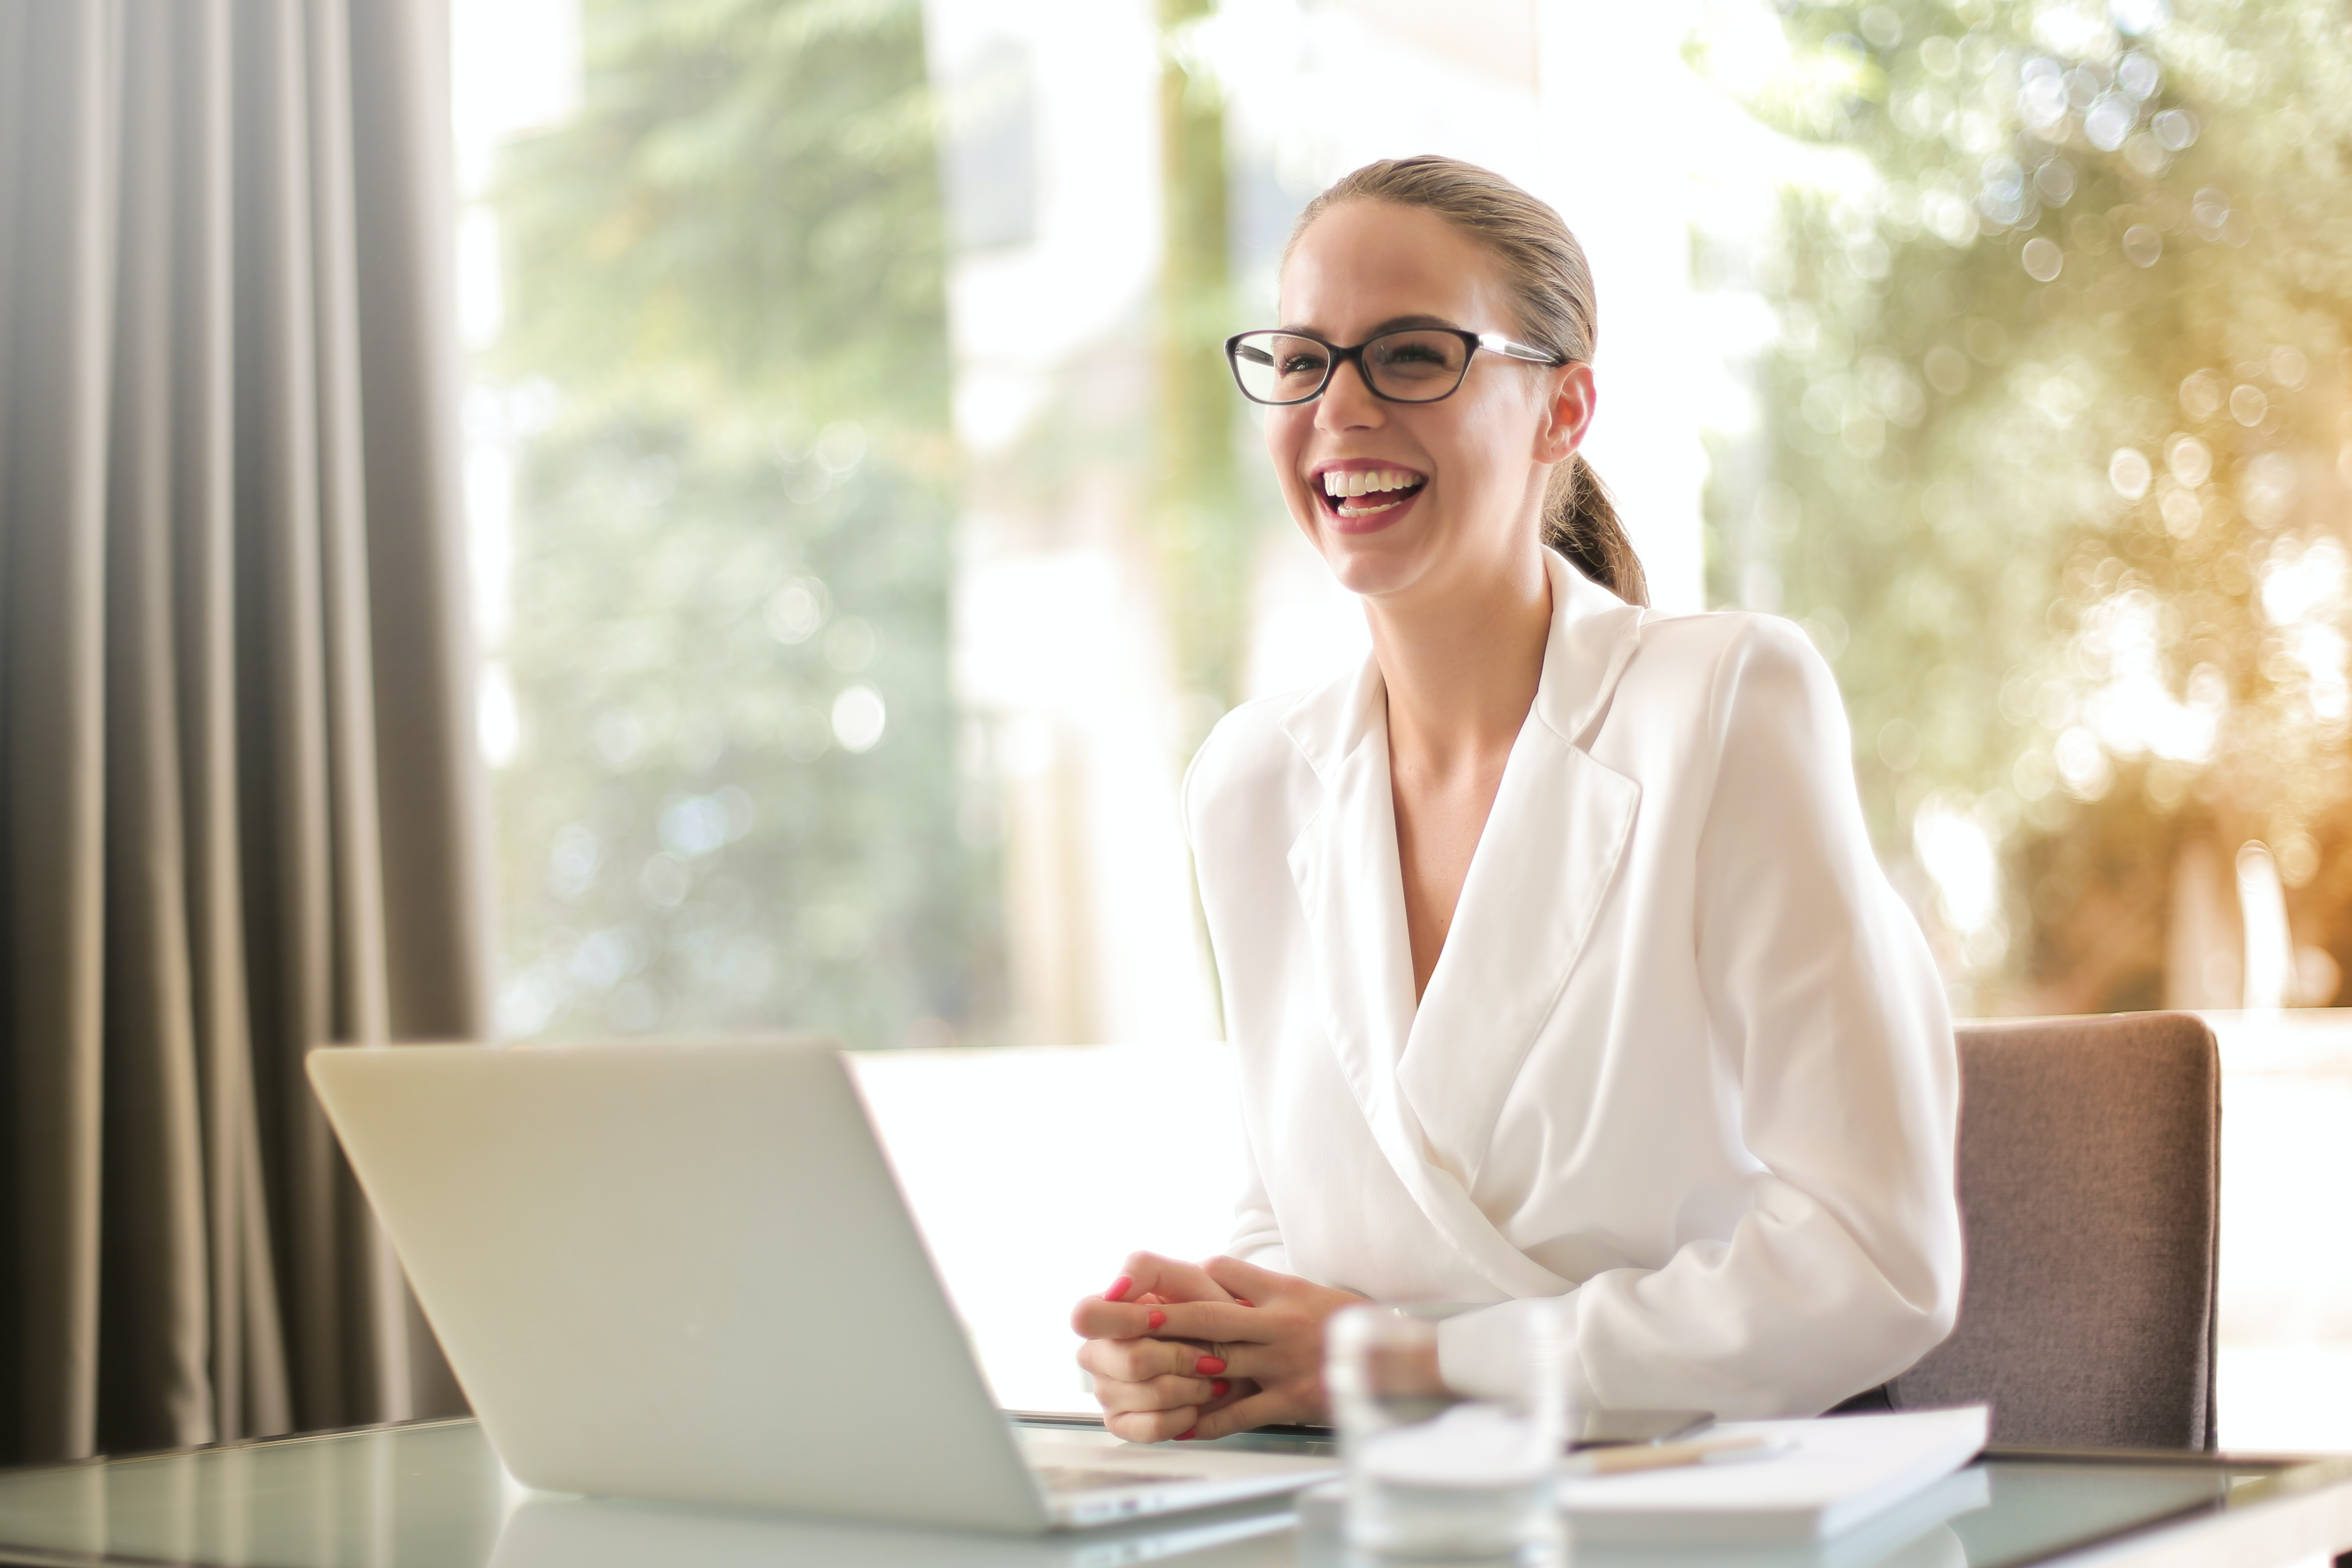 happy woman at work smiling at her desk